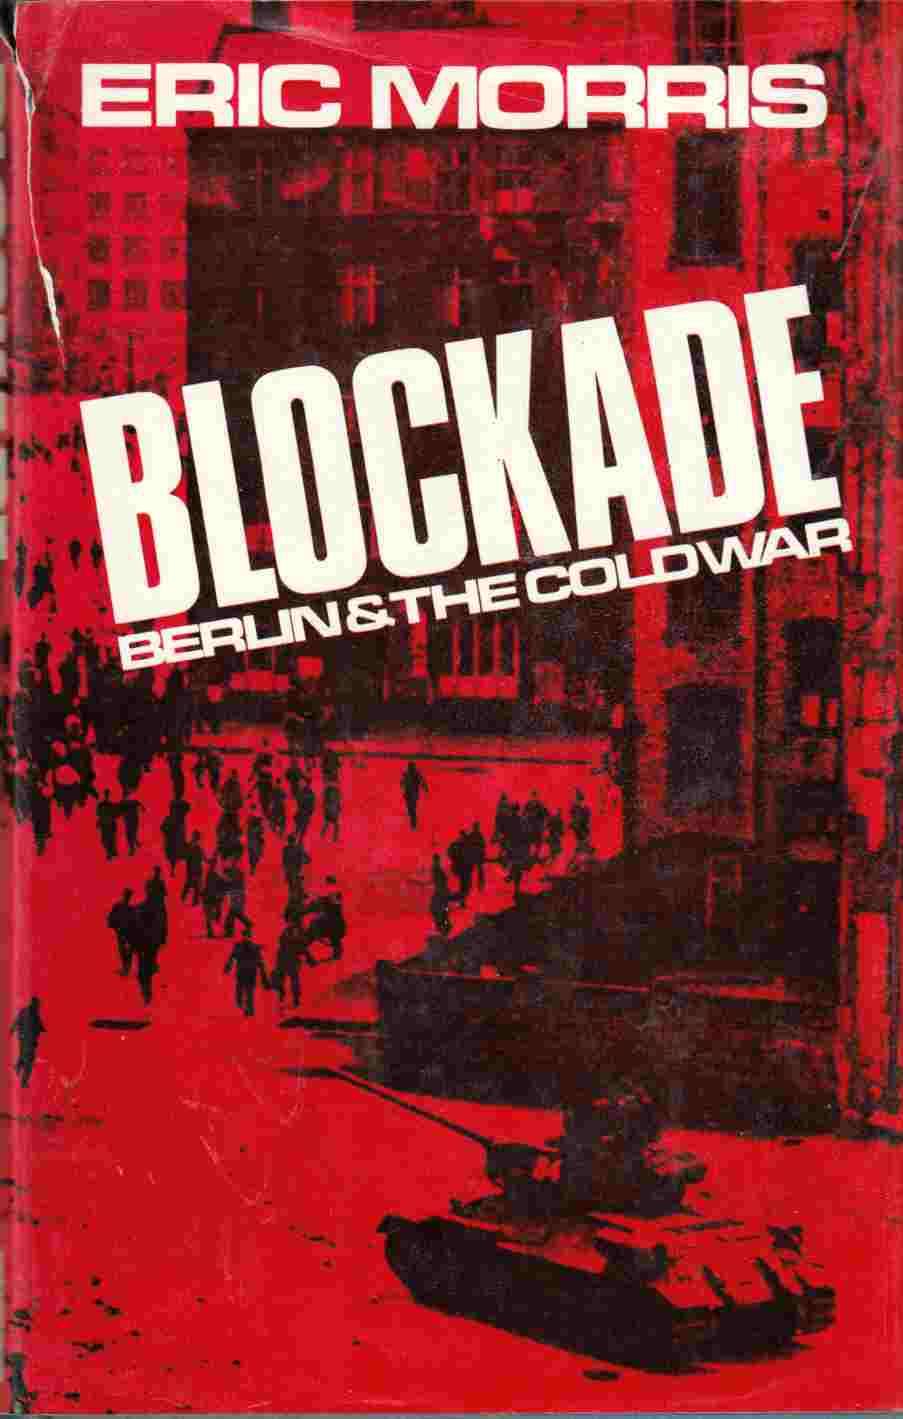 Image for Blockade Berlin and the Cold War